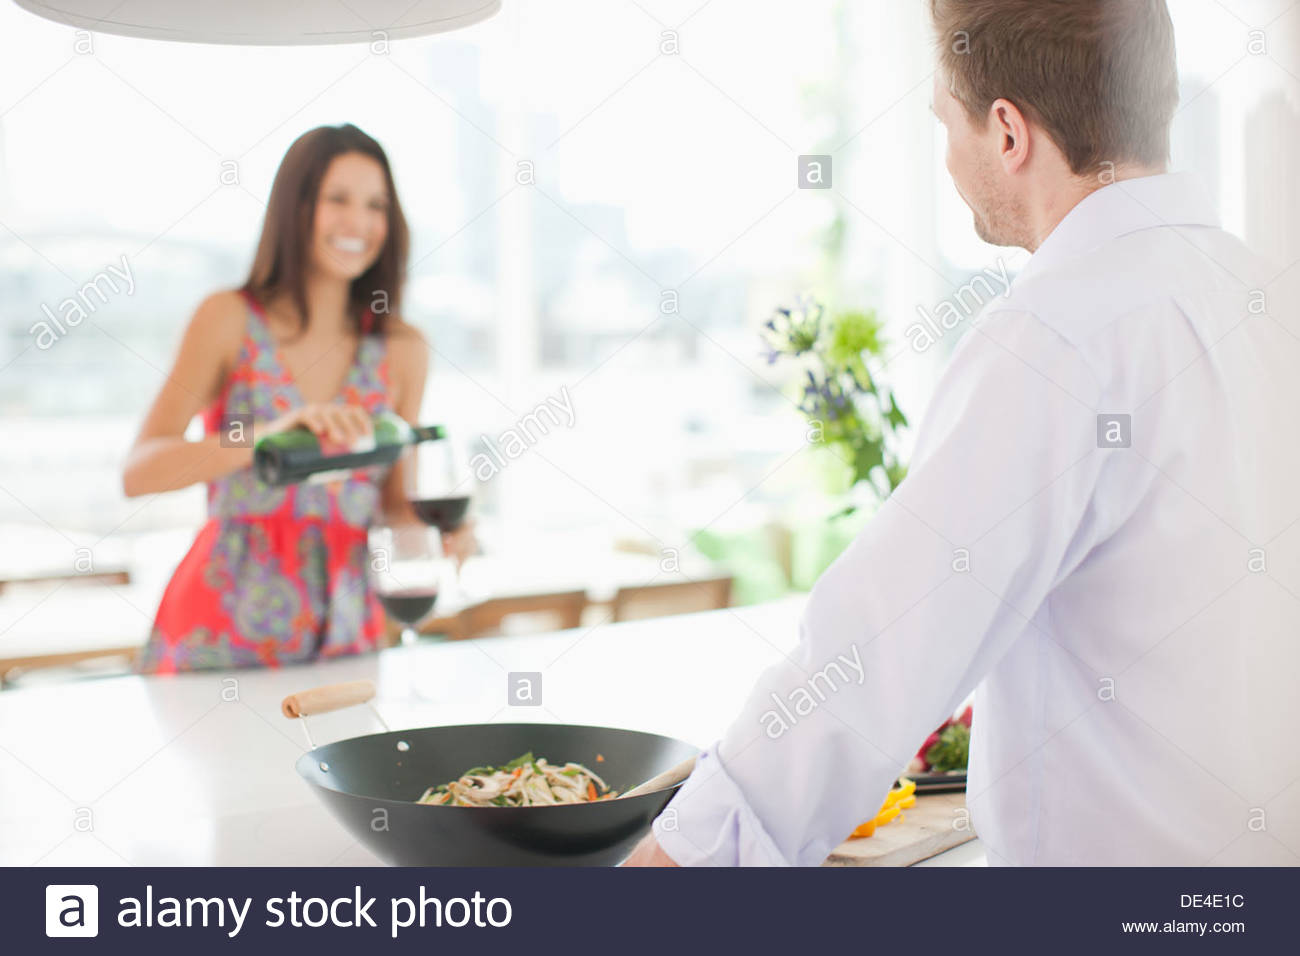 Couple toasting in kitchen with red wine - Stock Image